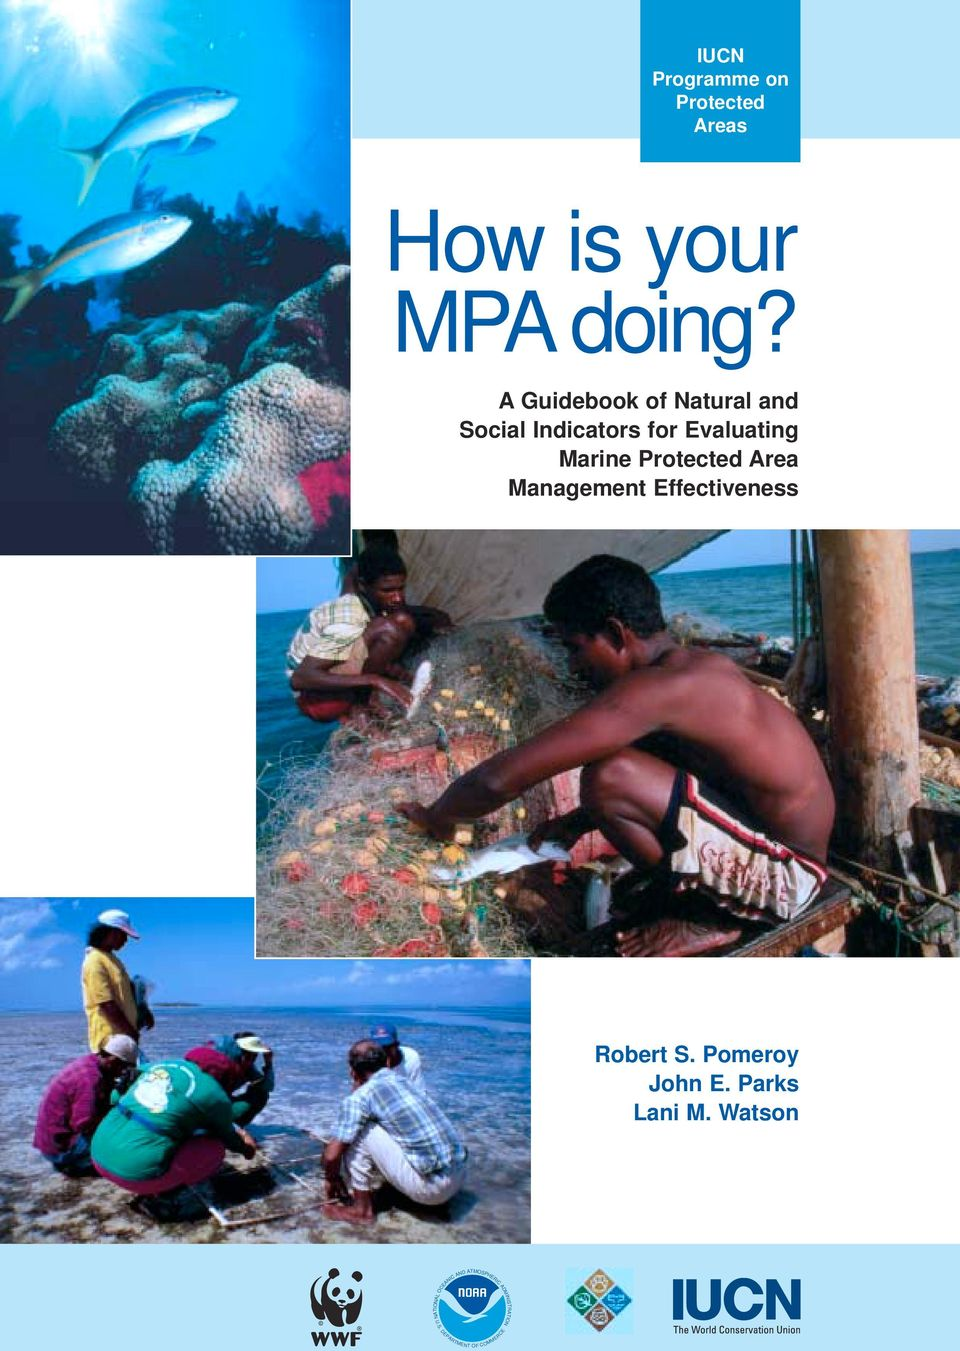 A Guidebook of Natural and Social Indicators for Evaluating Marine